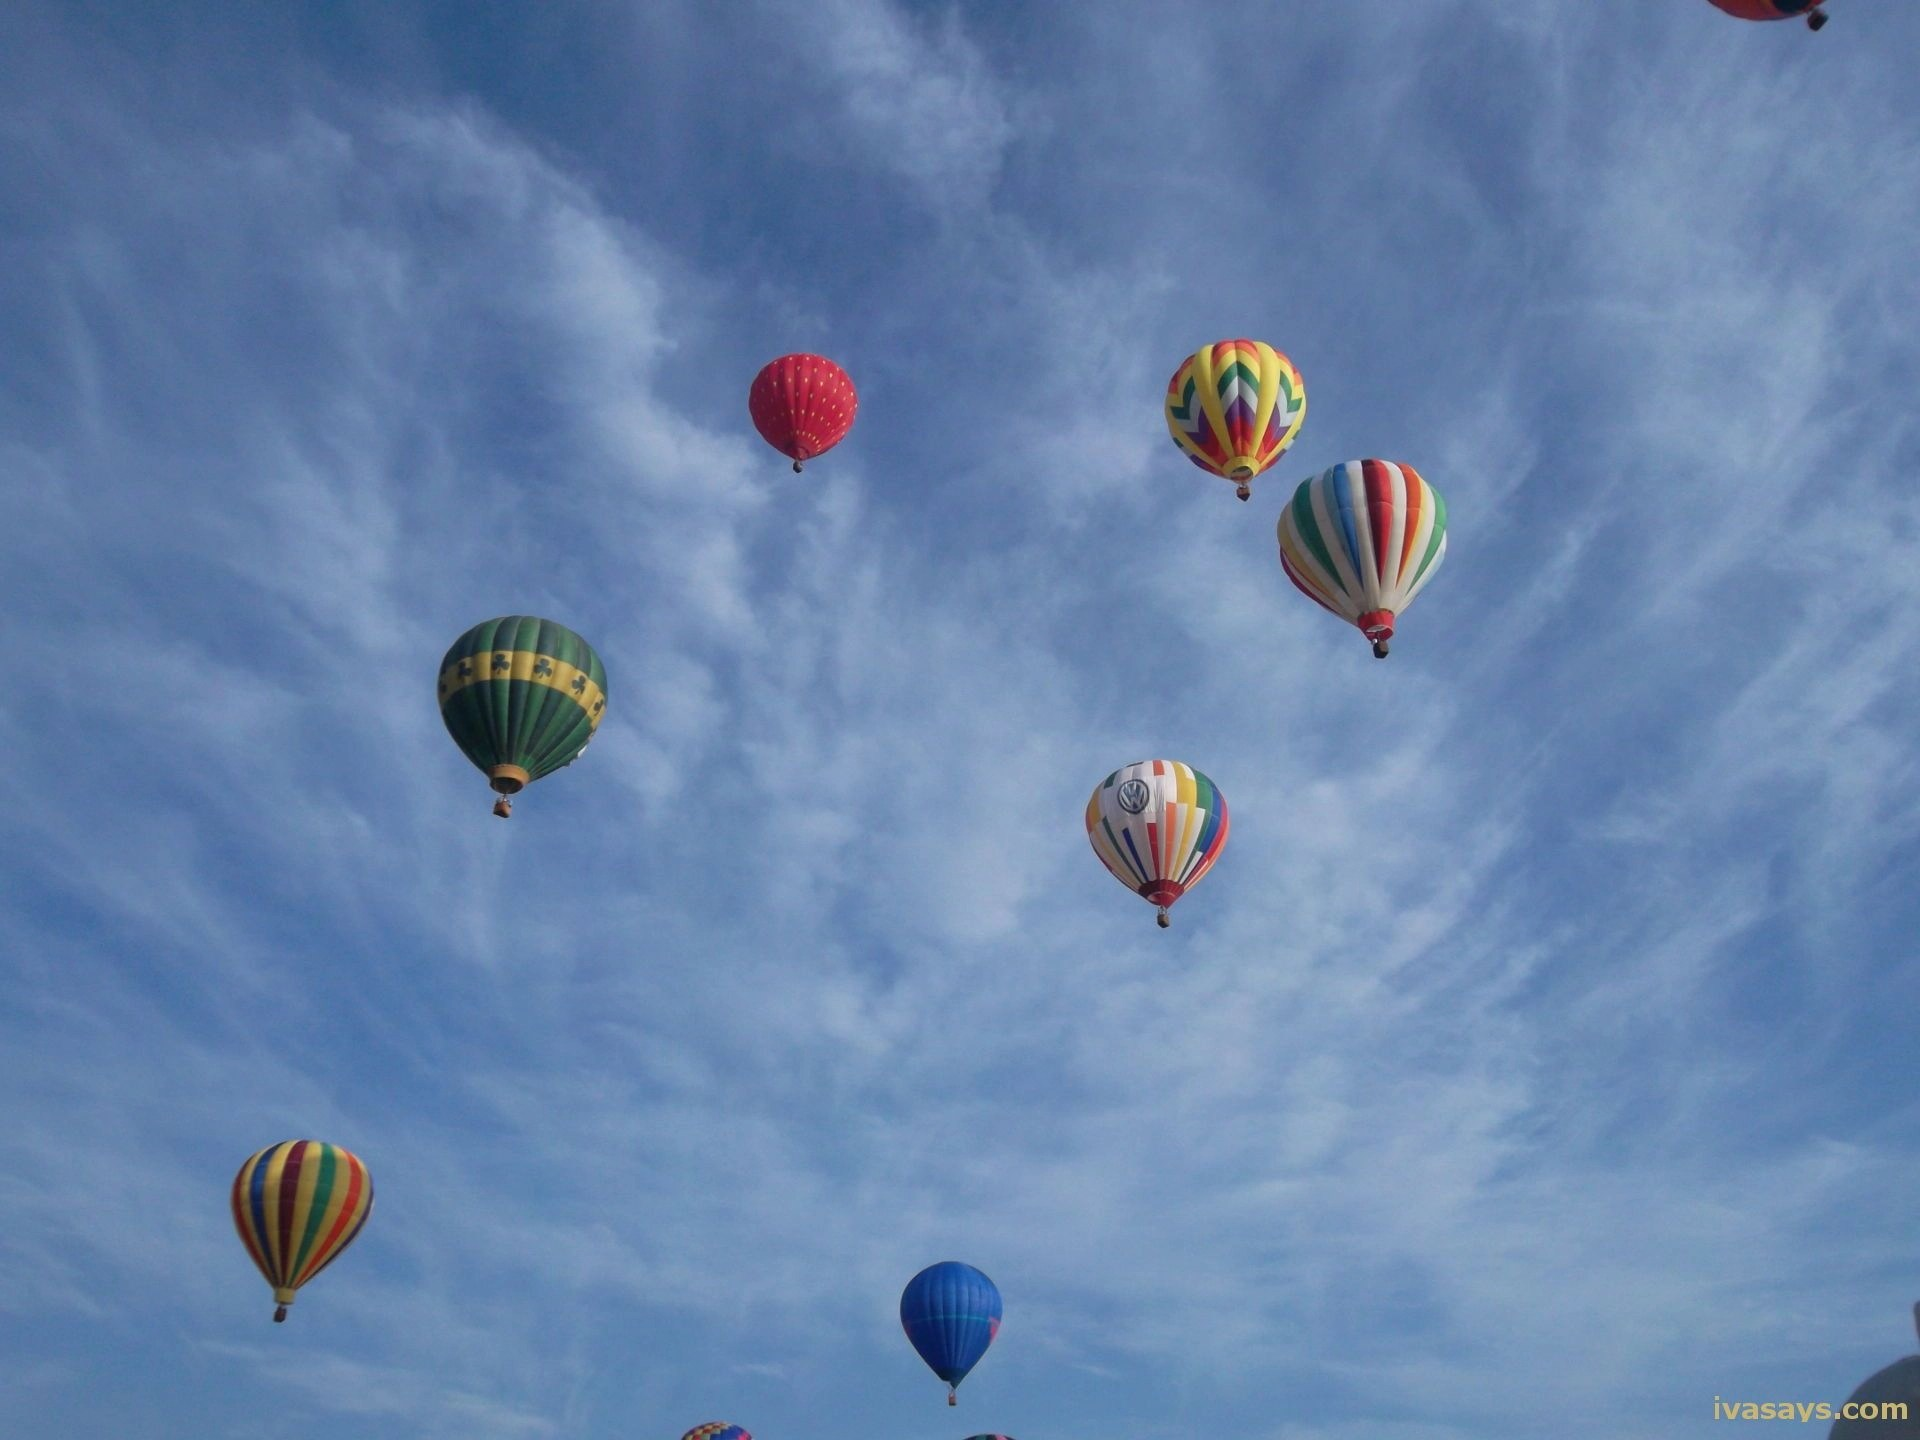 Many Hot Air Balloons at the Balloon Festival in NJ